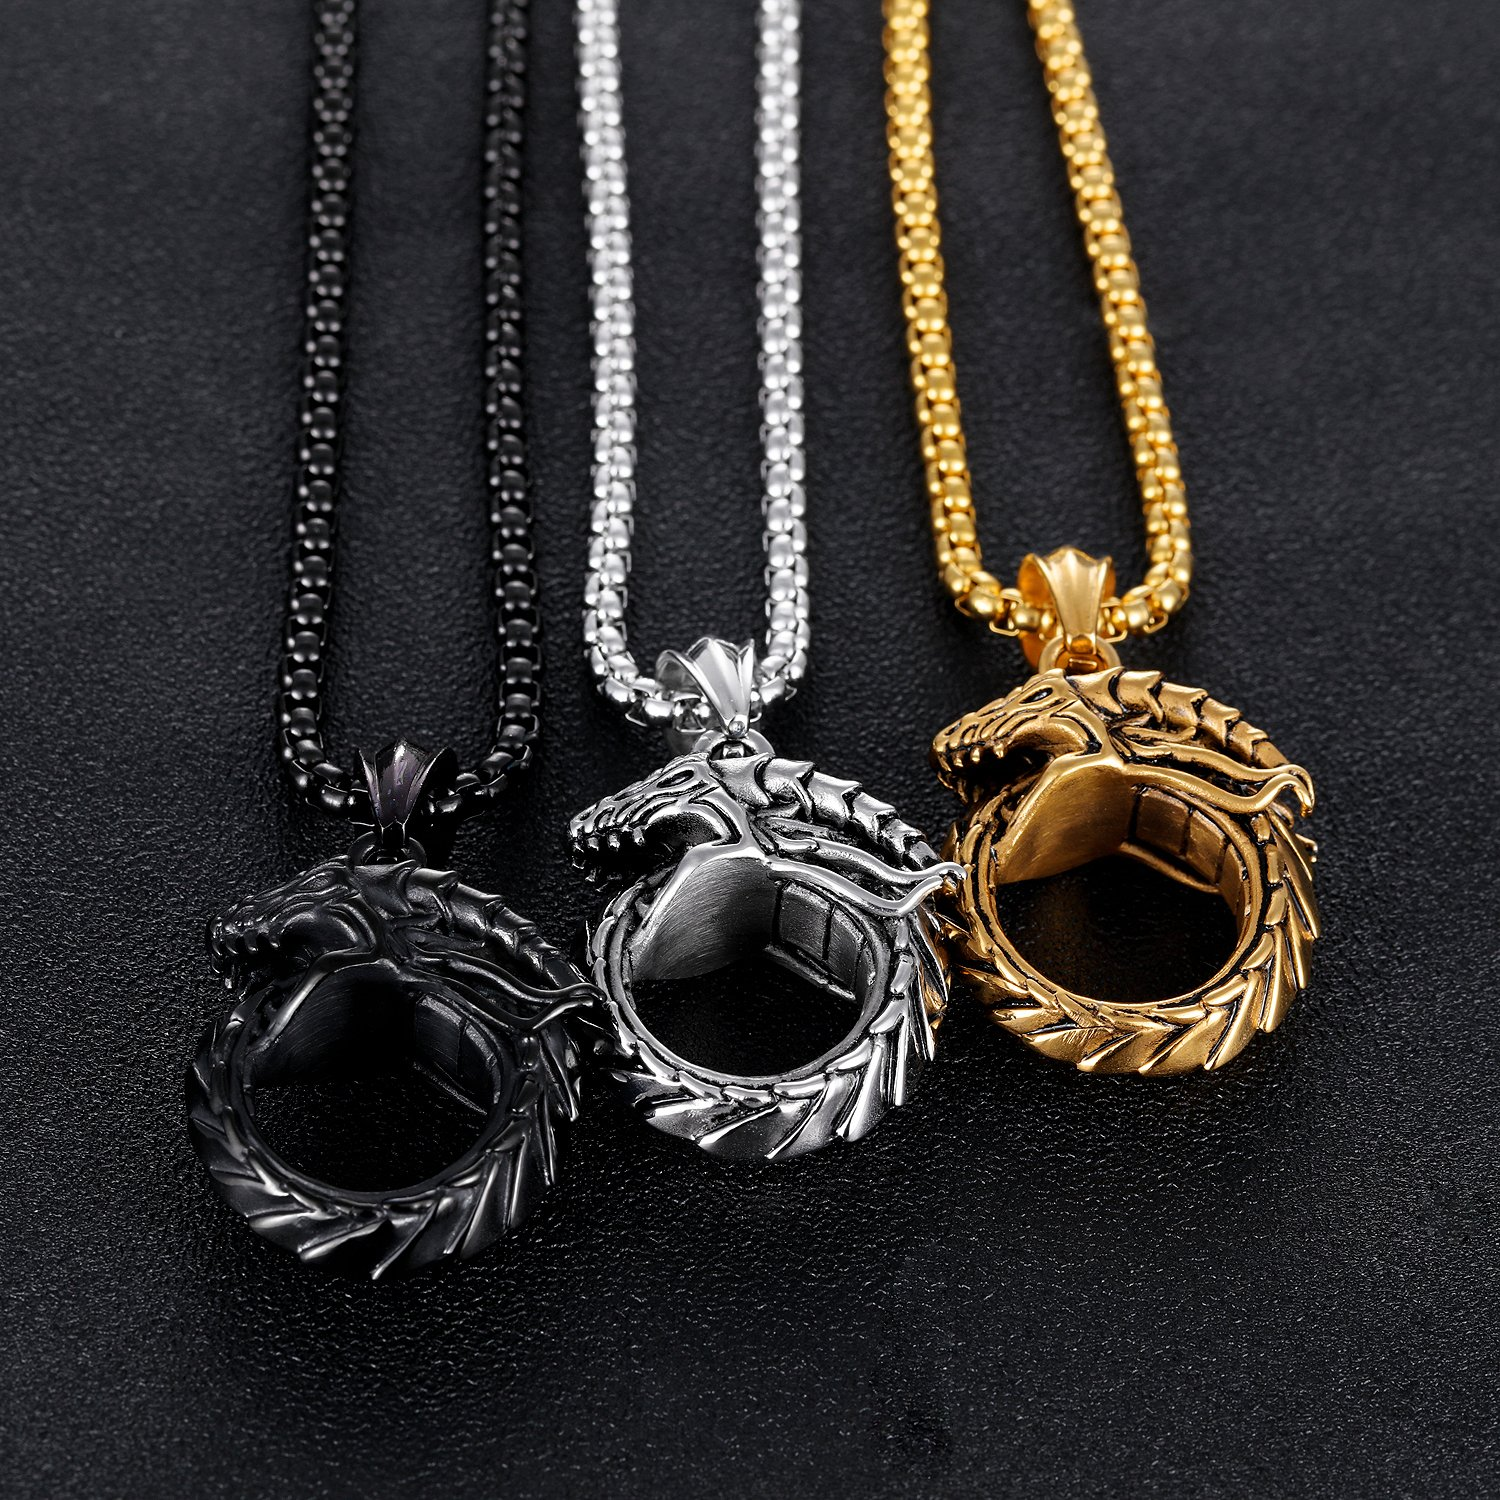 ccd9360cd2250 TEMICO Men's Vintage Stainless Steel Gothic Ouroboros Dragon Circle Pendant  Necklace, Chain 23.6 inches